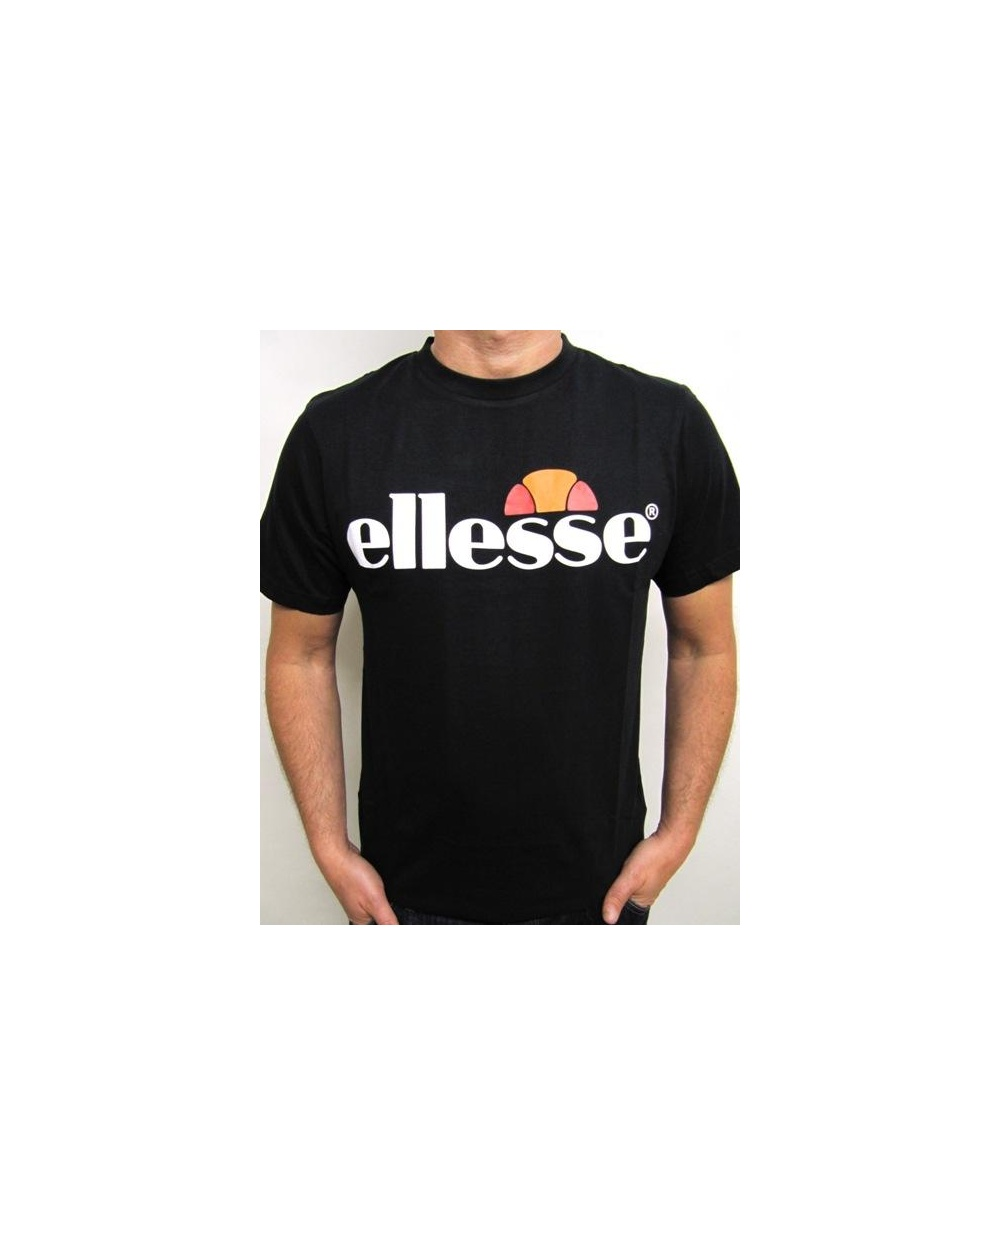 Ellesse logo t shirt black ellesse mens logo tee for Shirts with small logos